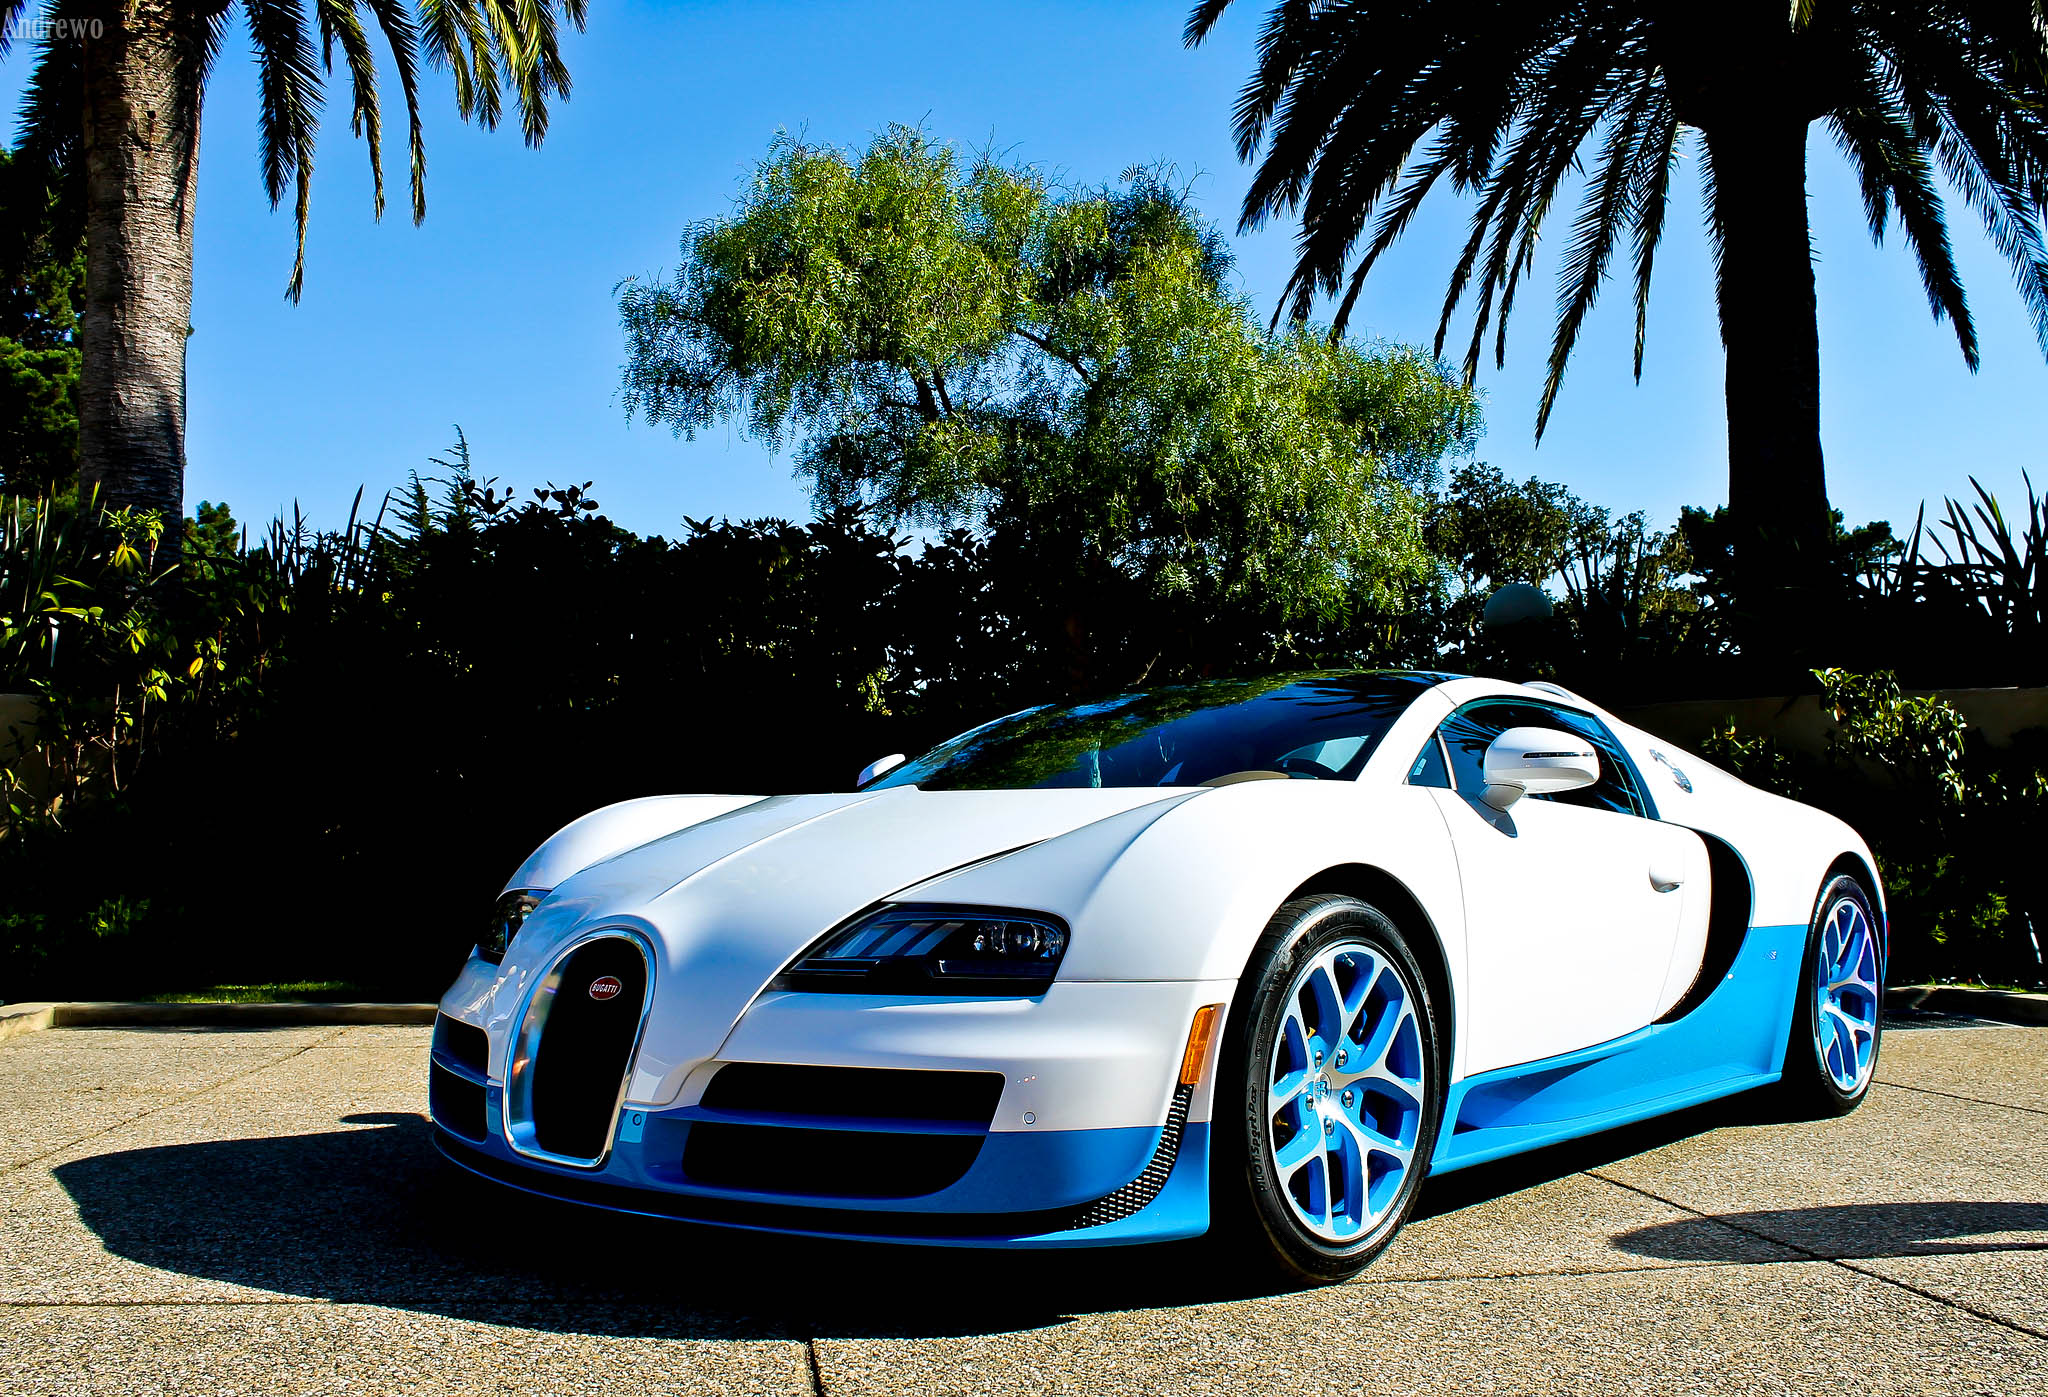 Bugatti veyron wallpapers pictures in high quality all hd wallpapers - Bugatti veyron photos wallpapers ...